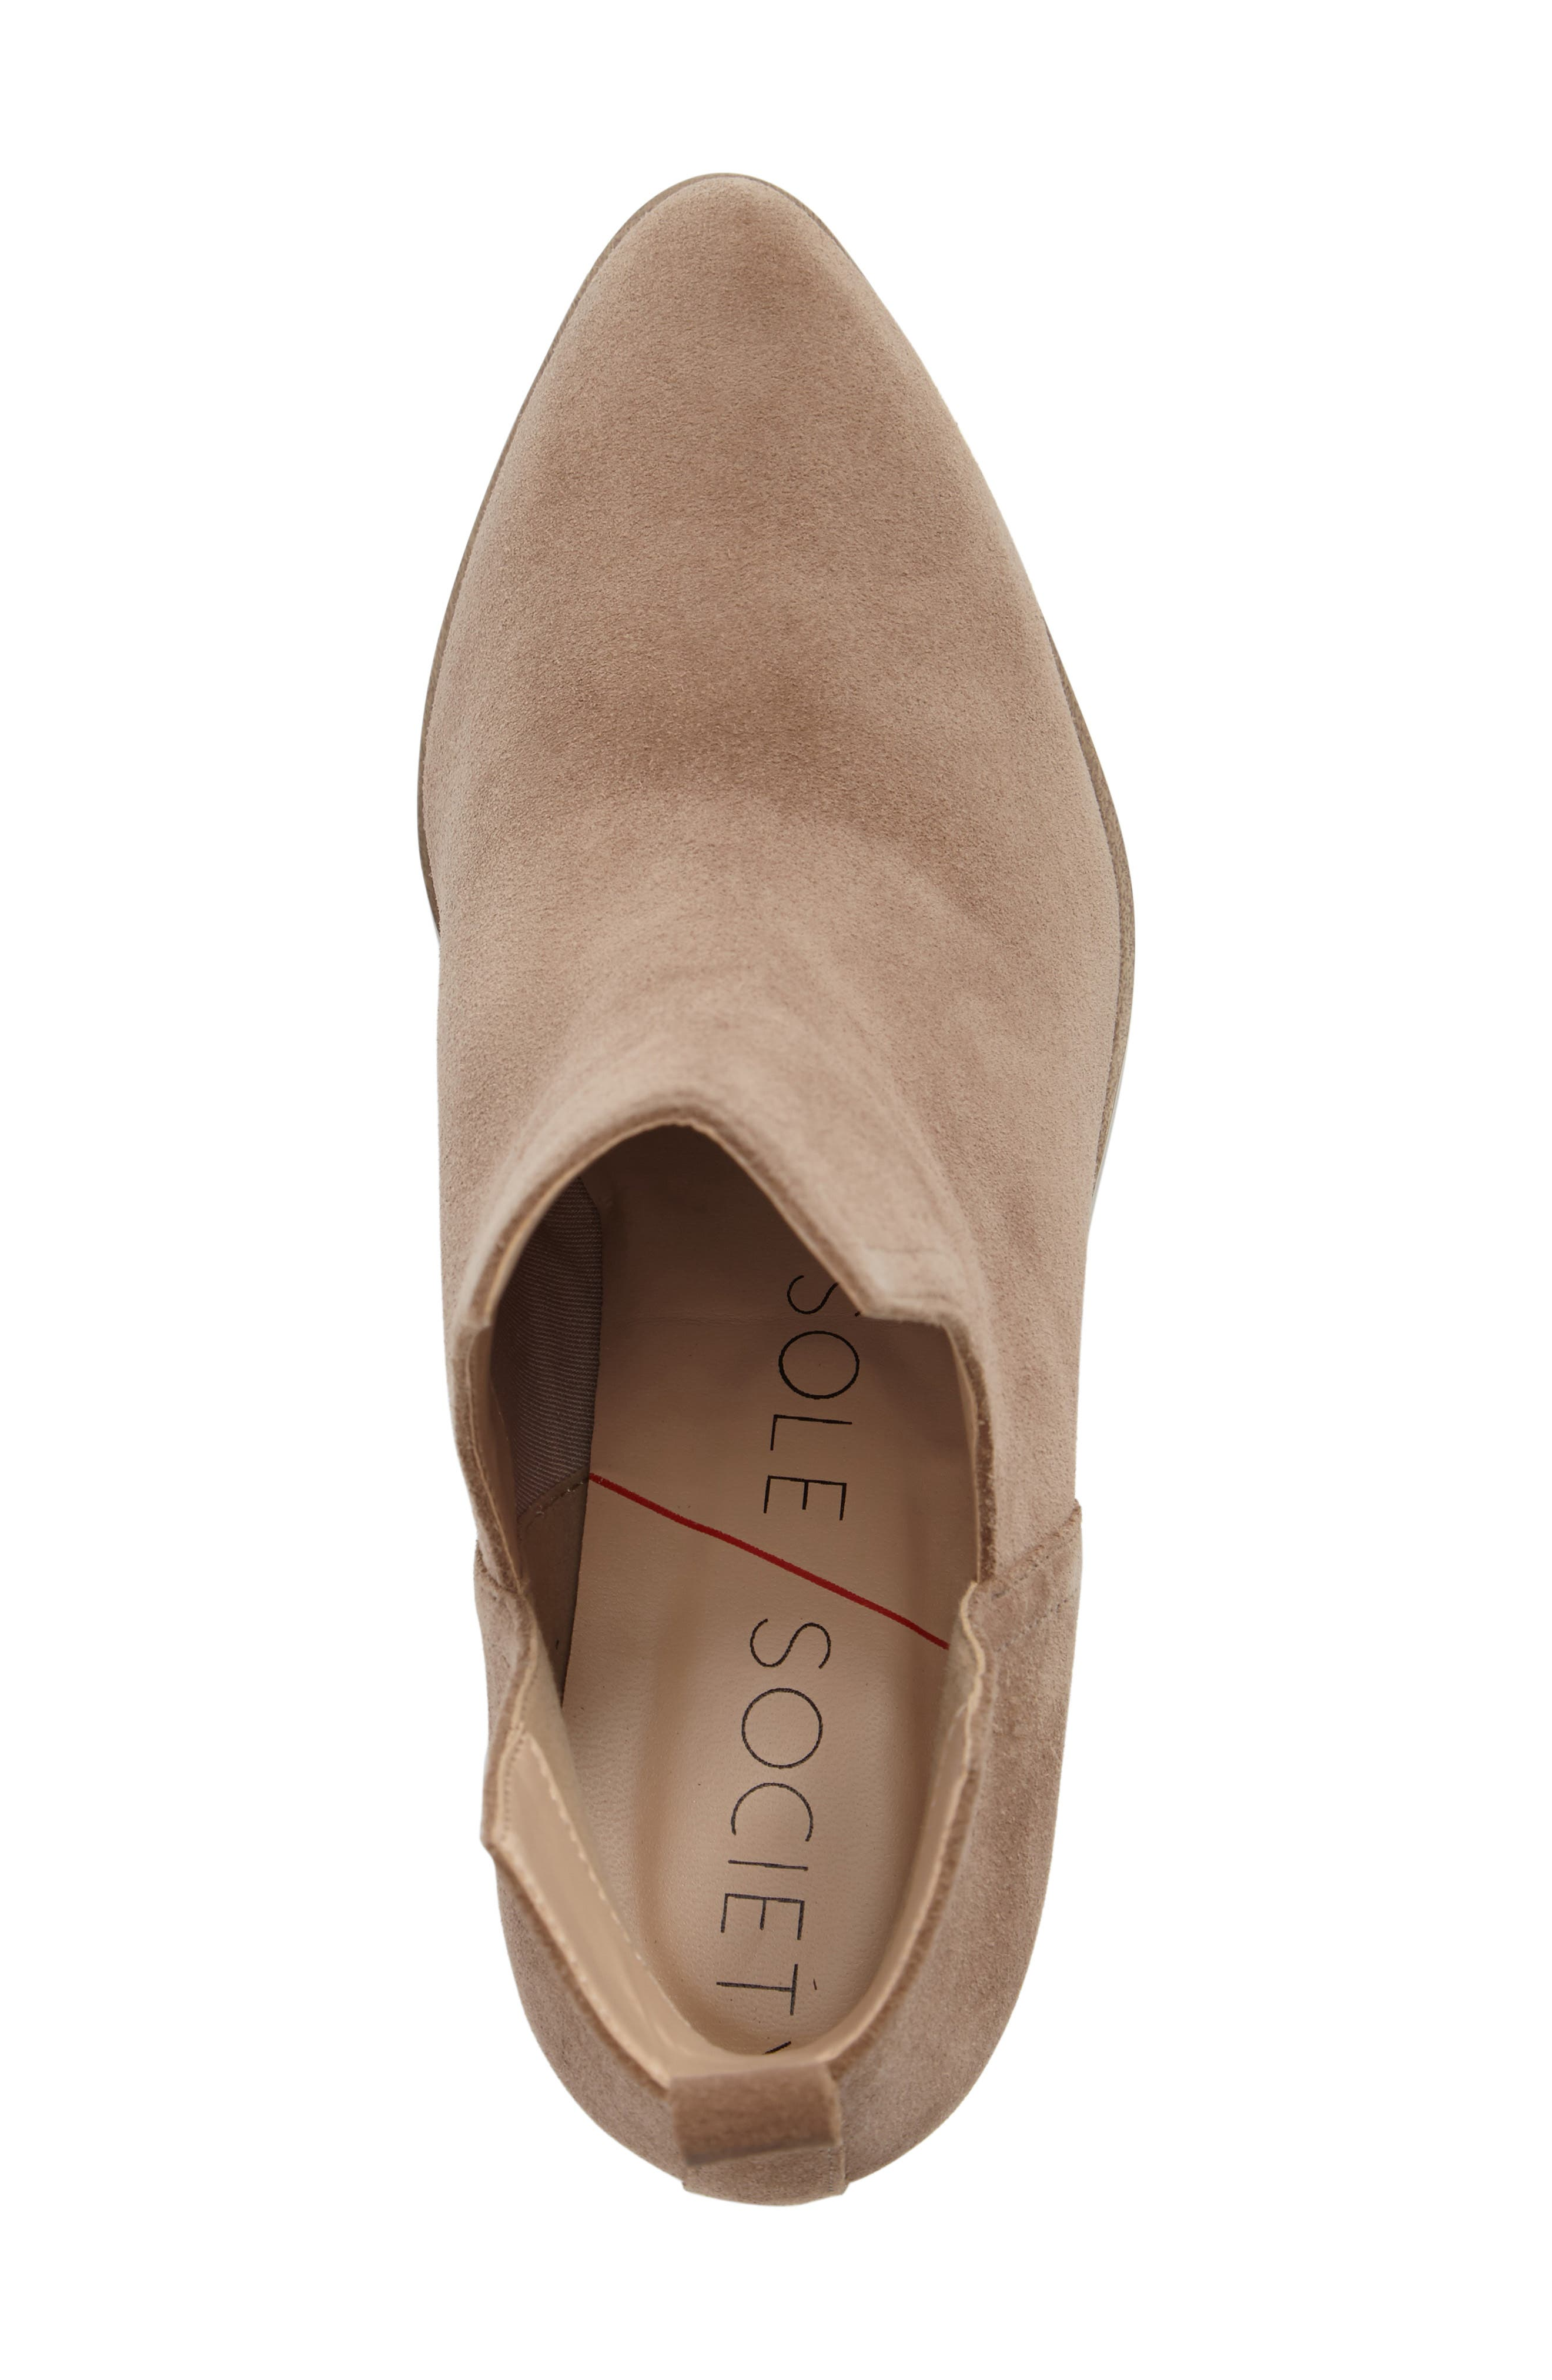 Madrid Bootie,                             Alternate thumbnail 5, color,                             Sand Suede